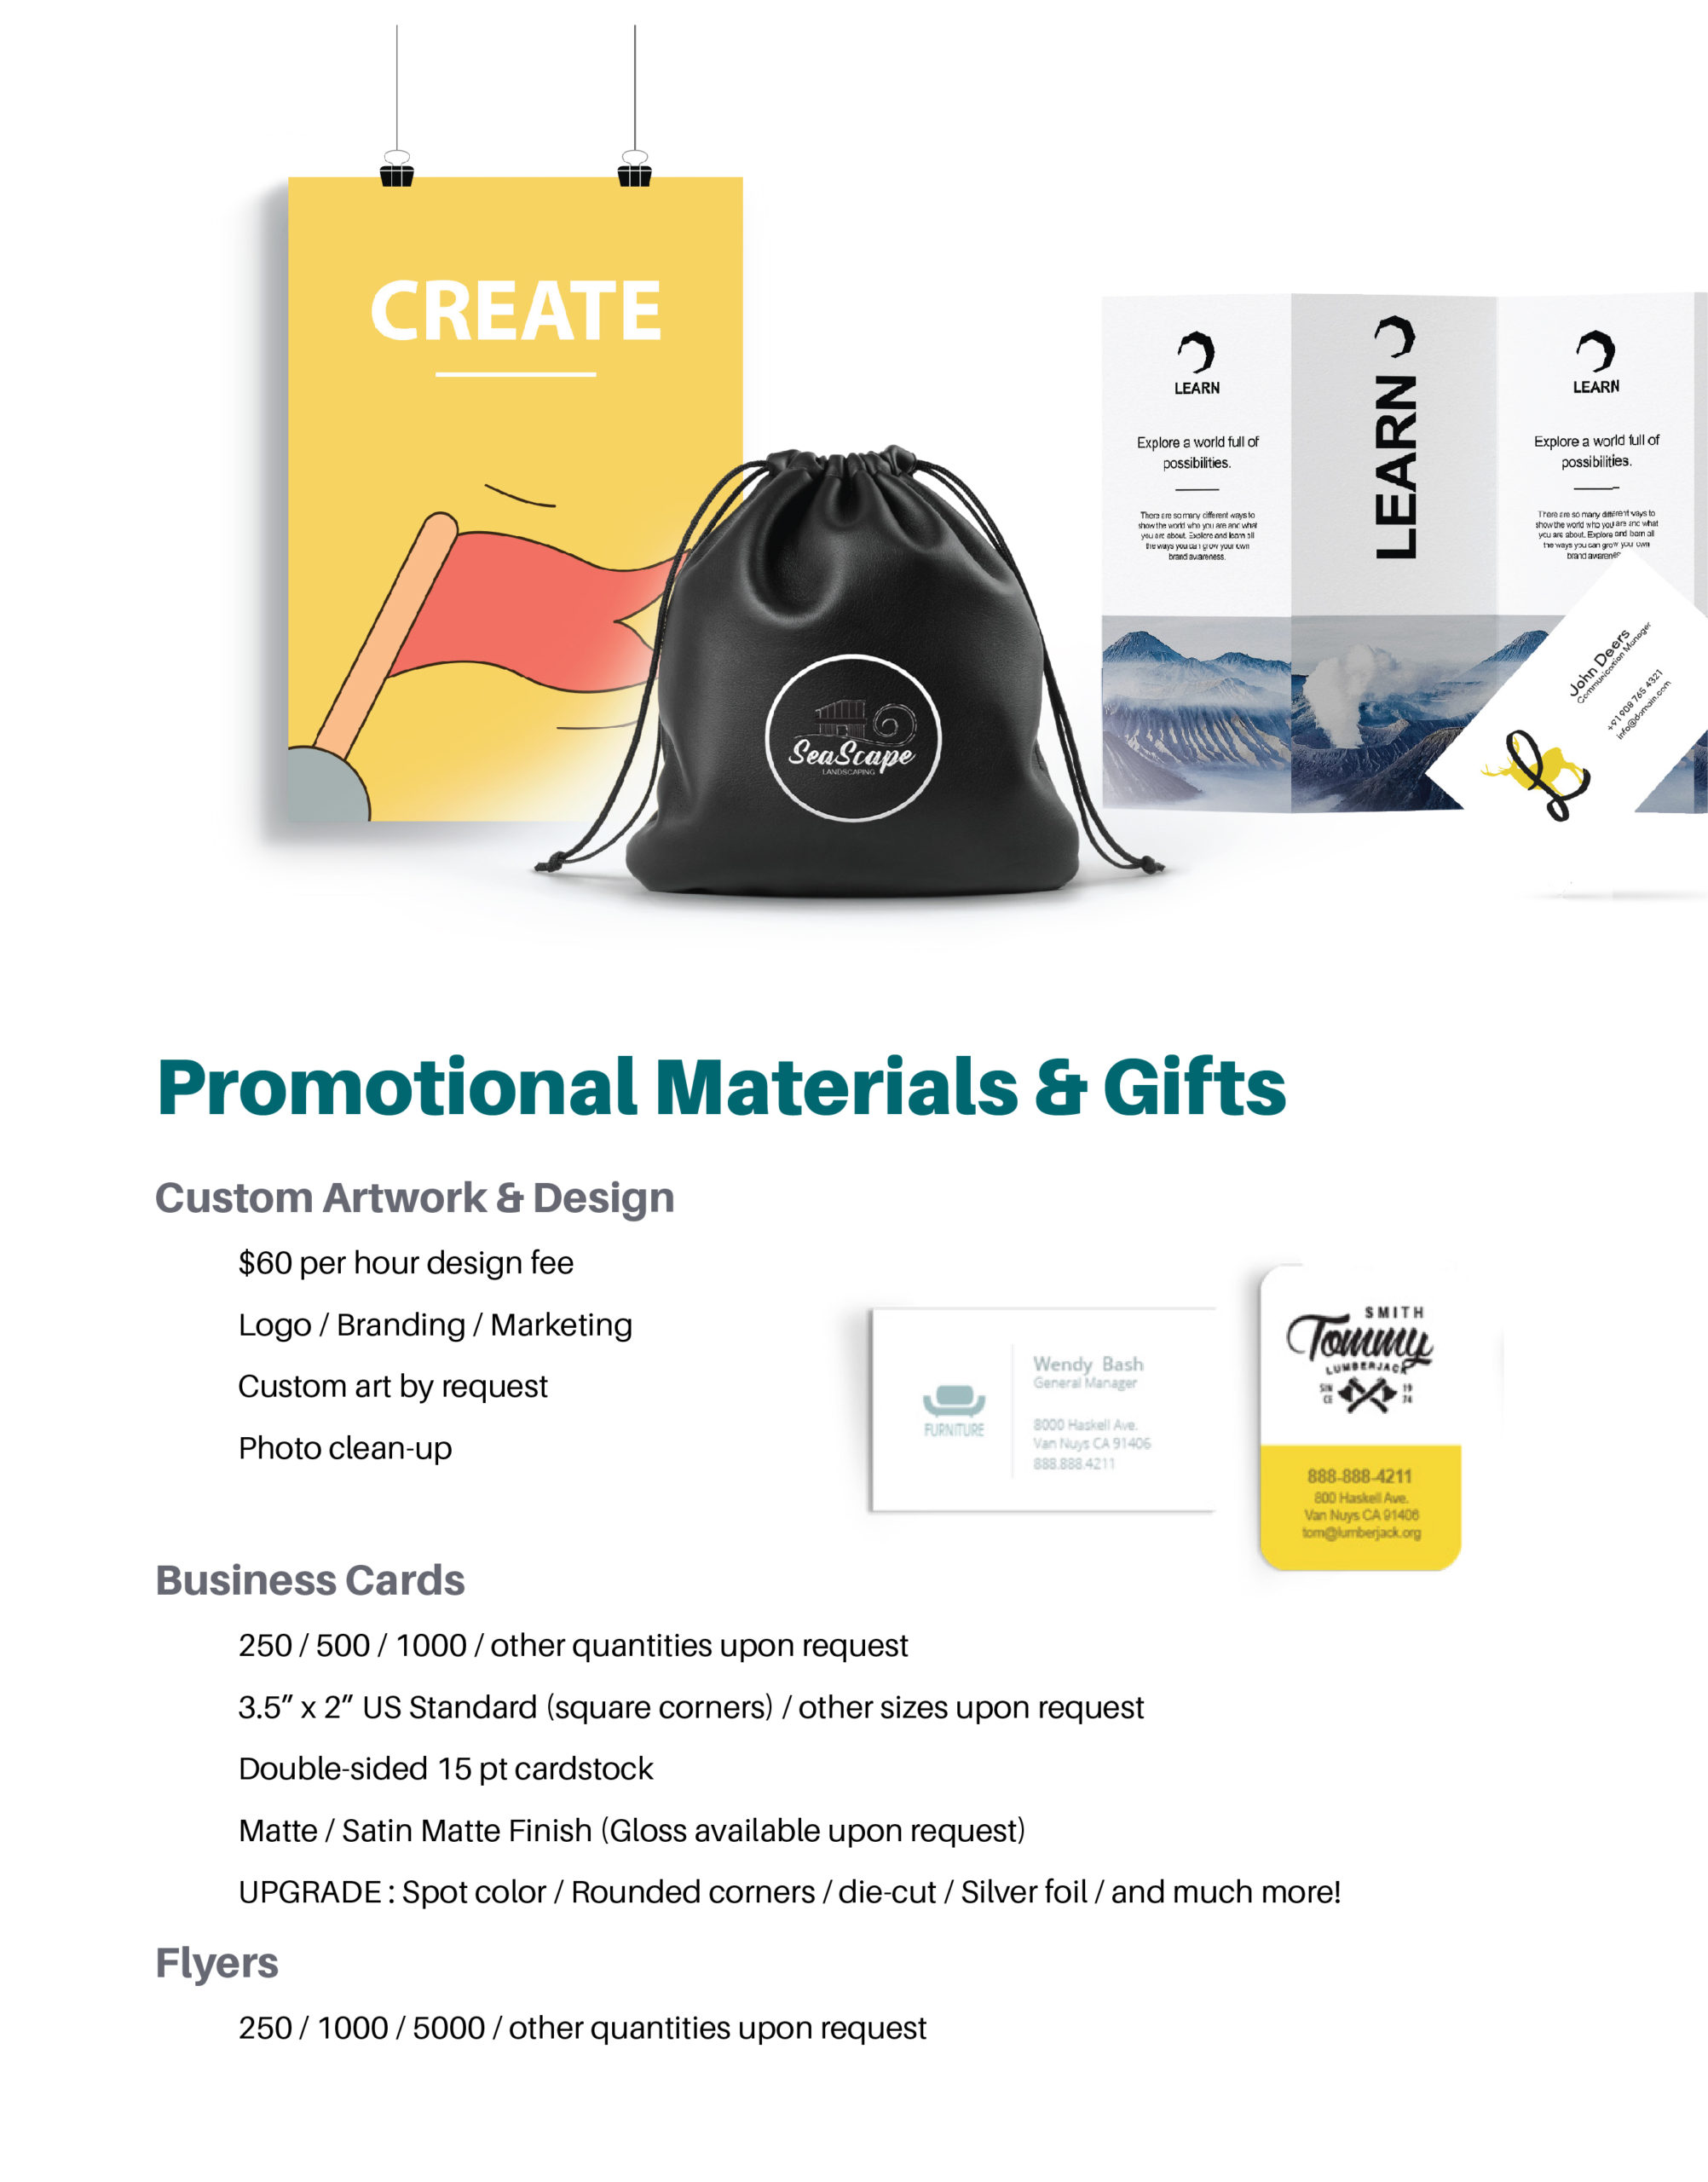 Page featuring Promotional Materials and Gifts: Custom Artwork and Design, Business Cards, Flyers